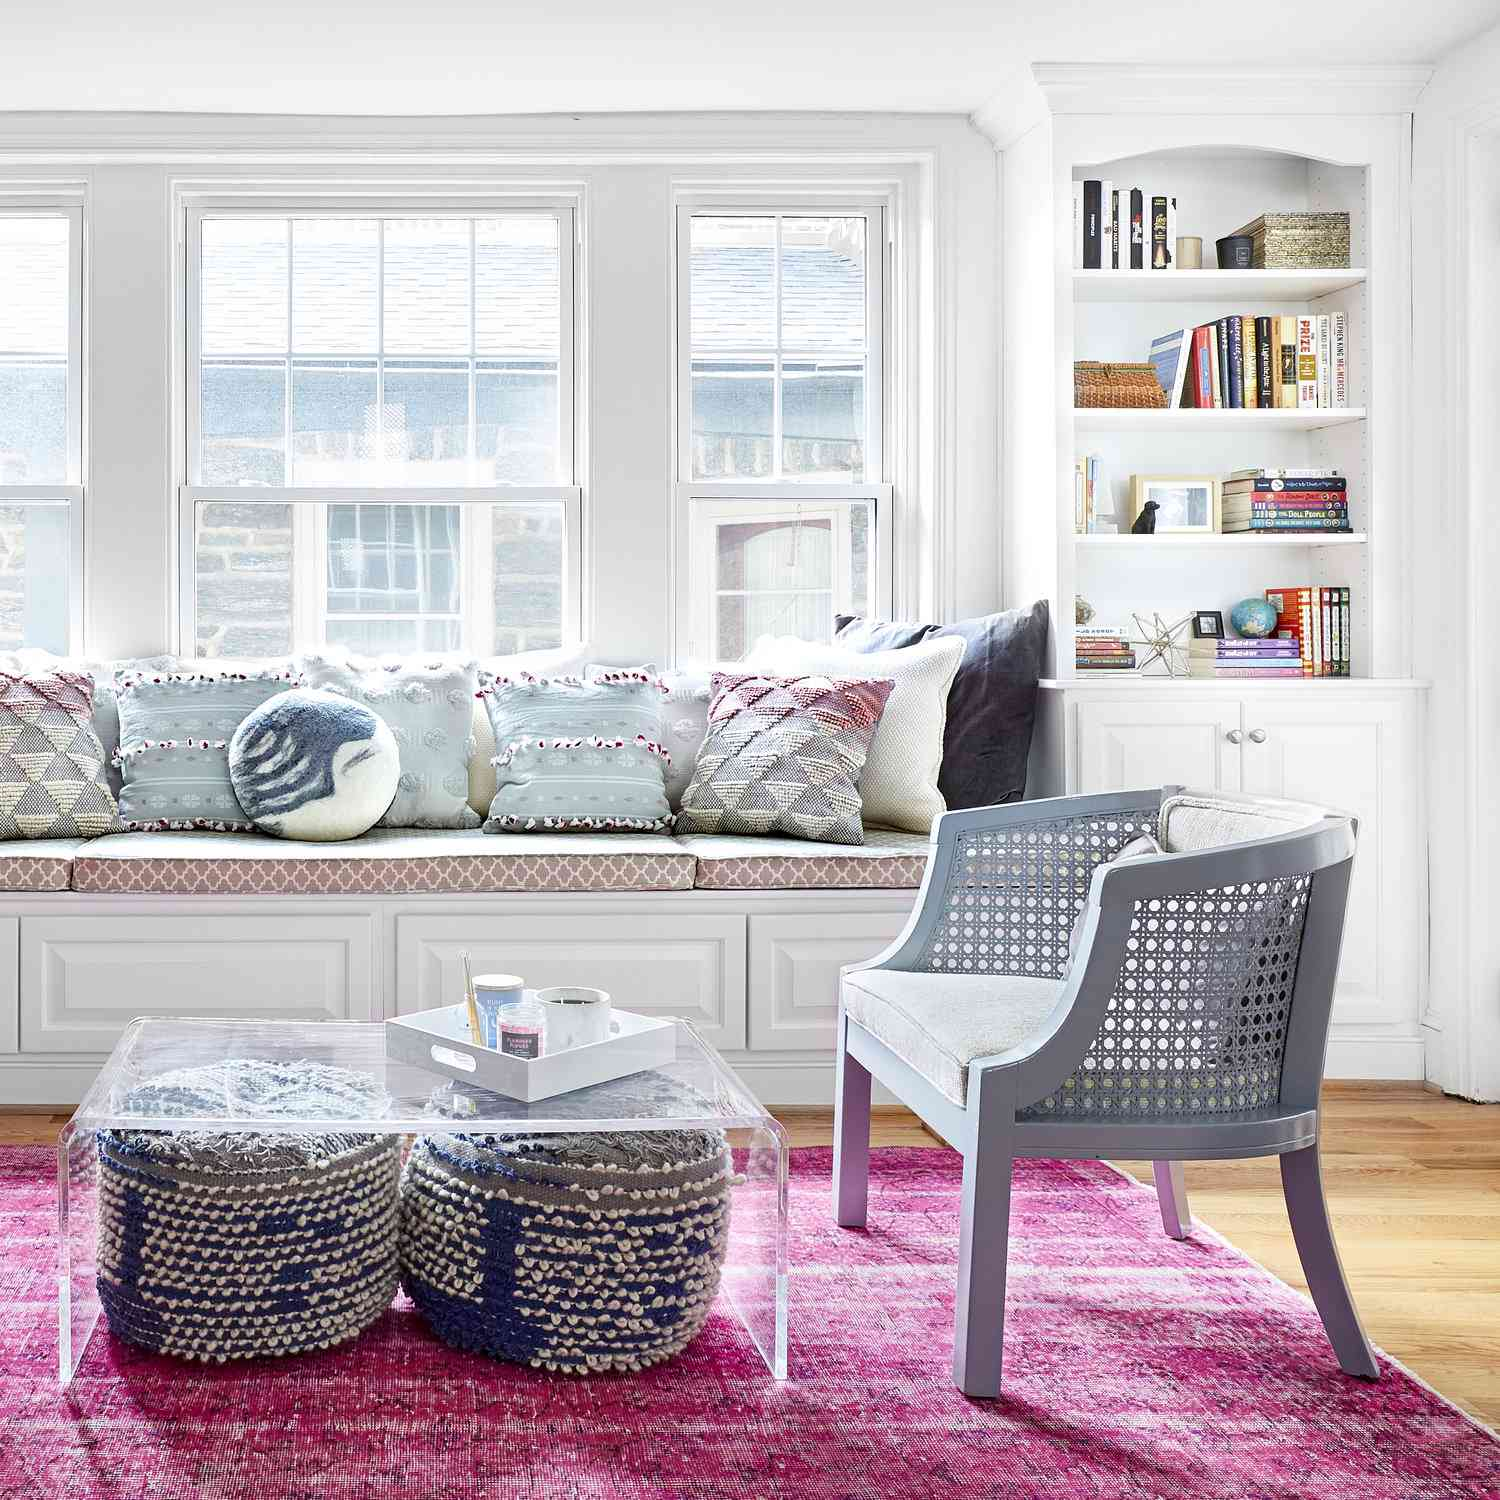 Living room features clear coffee table, pink area rug